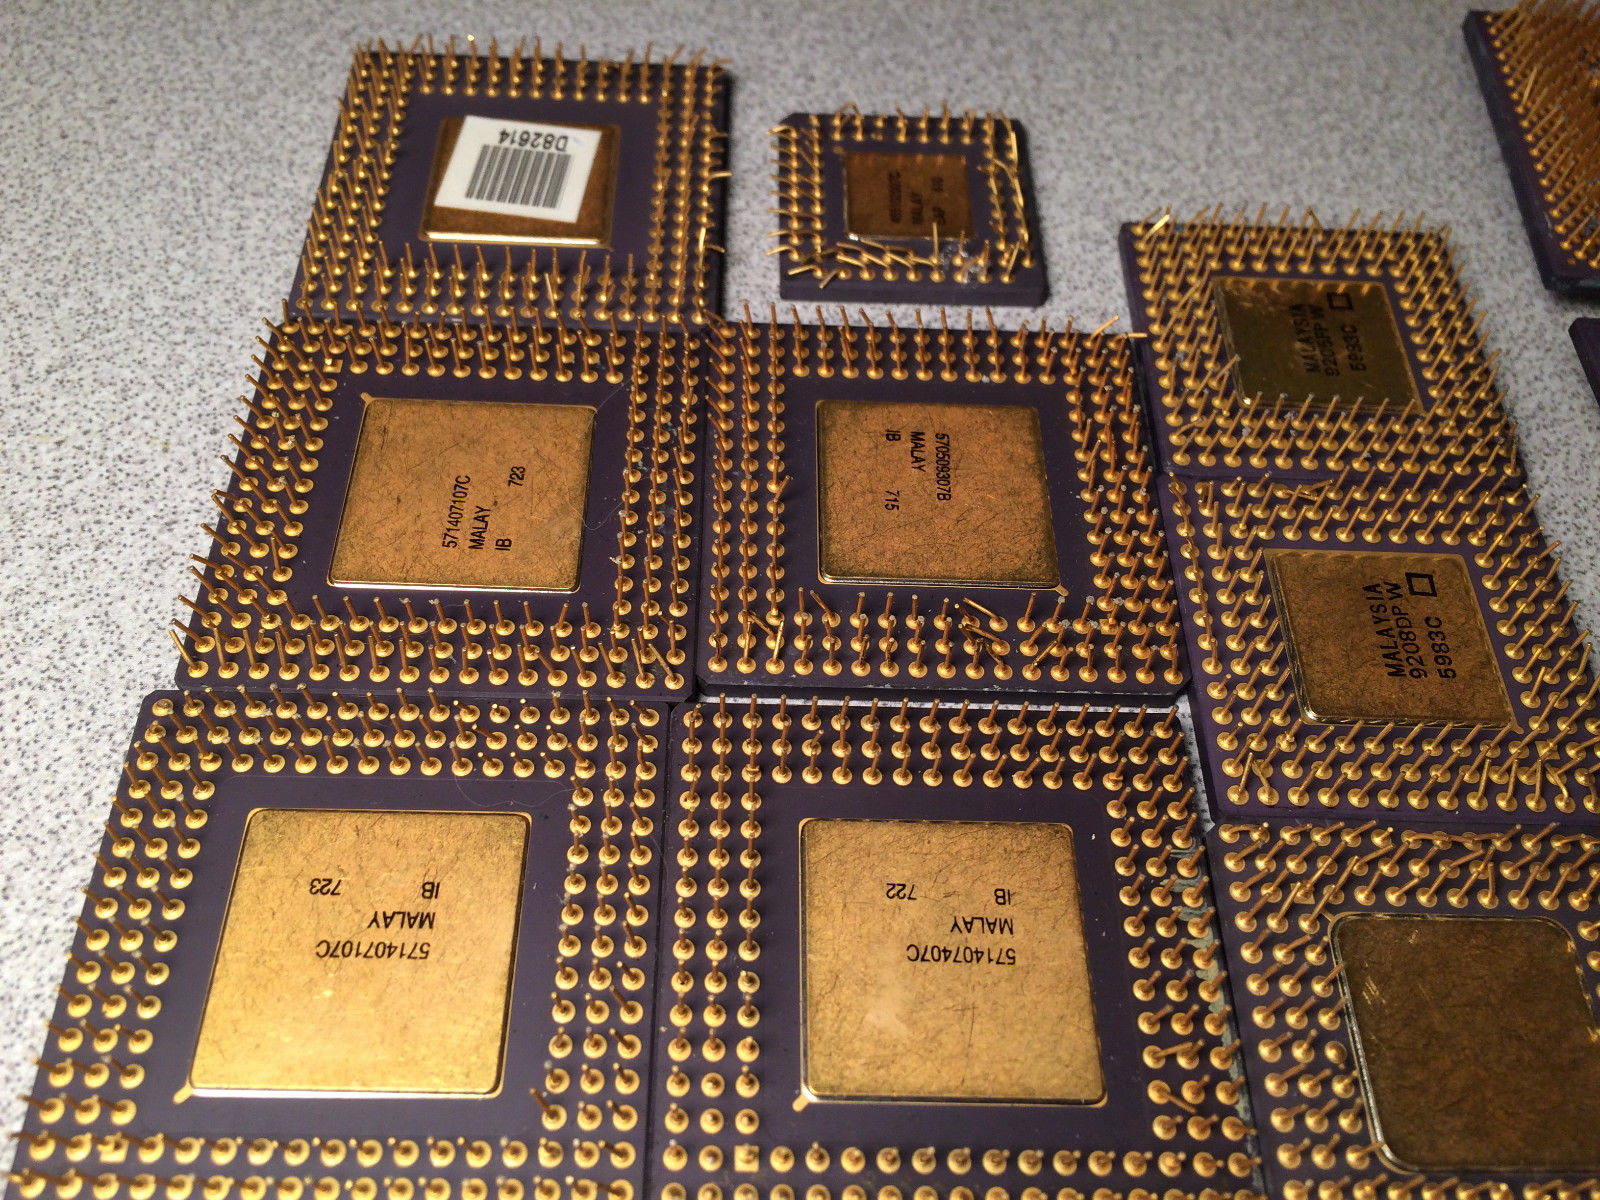 Intel Pentium Pro processers for gold recovery